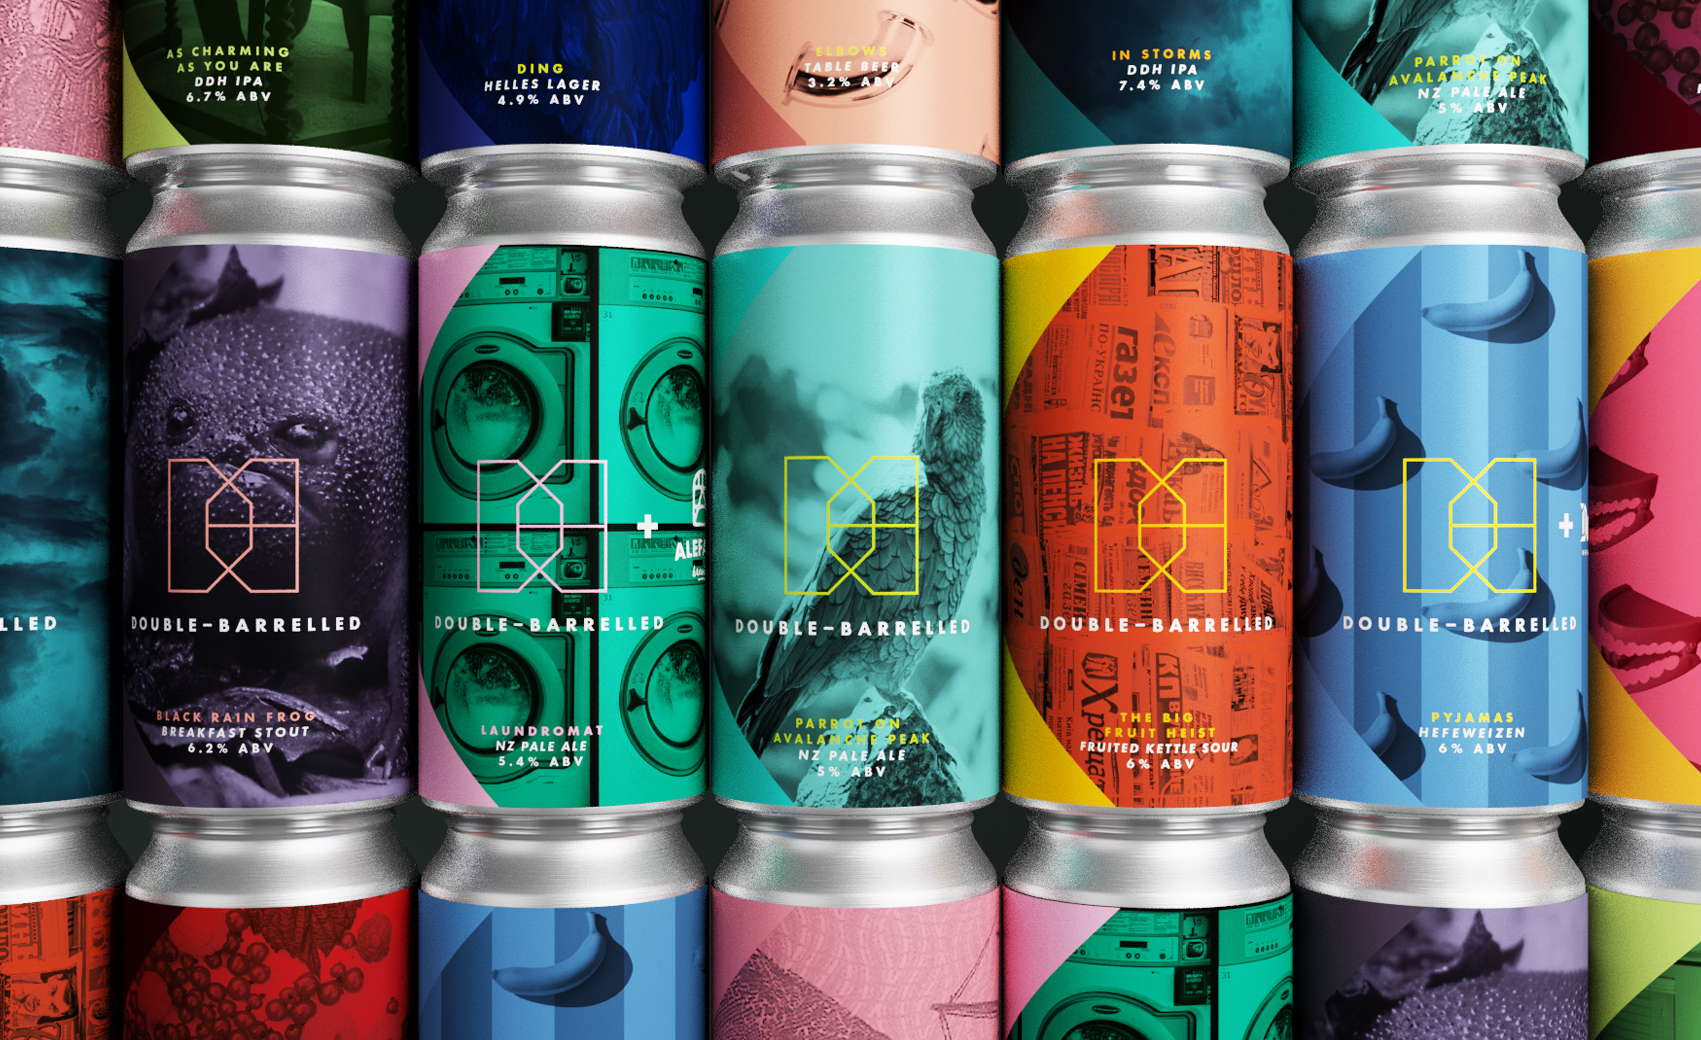 Double-Barrelled Branding: Journeys into Craft Beer by Kingdom & Sparrow